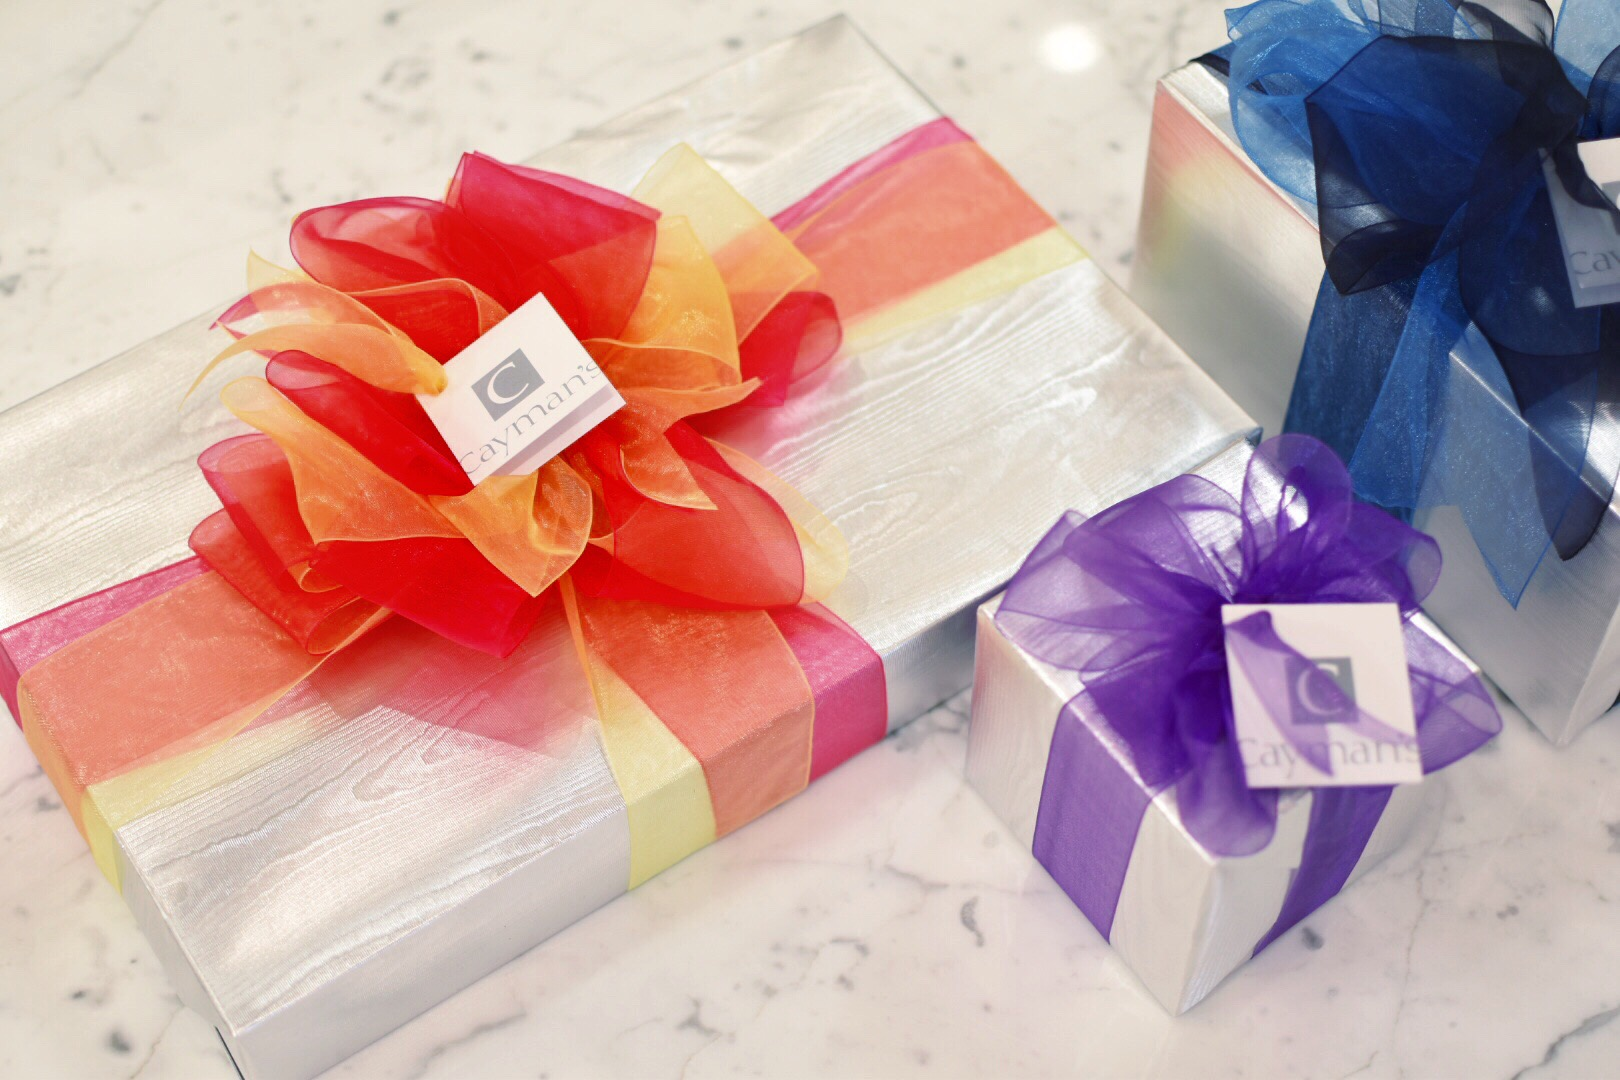 Cayman's Gift Wrap